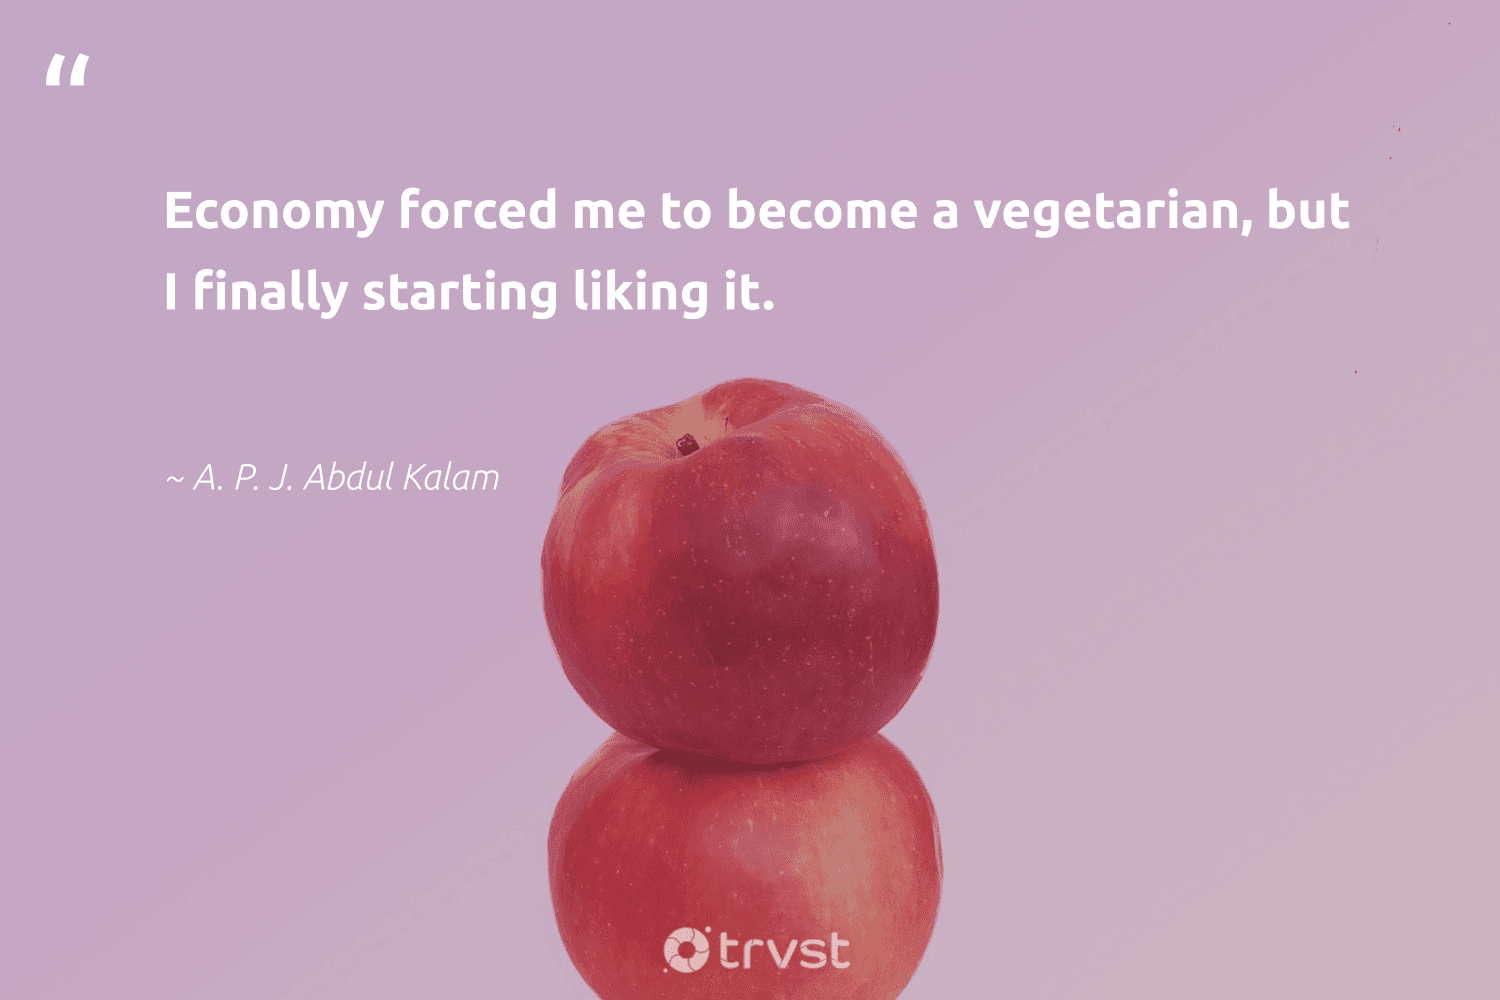 """""""Economy forced me to become a vegetarian, but I finally starting liking it.""""  - A. P. J. Abdul Kalam #trvst #quotes #vegan #vegetarian #plantbased #sustainable #gogreen #socialimpact #greenliving #sustainability #planetearthfirst #govegan"""